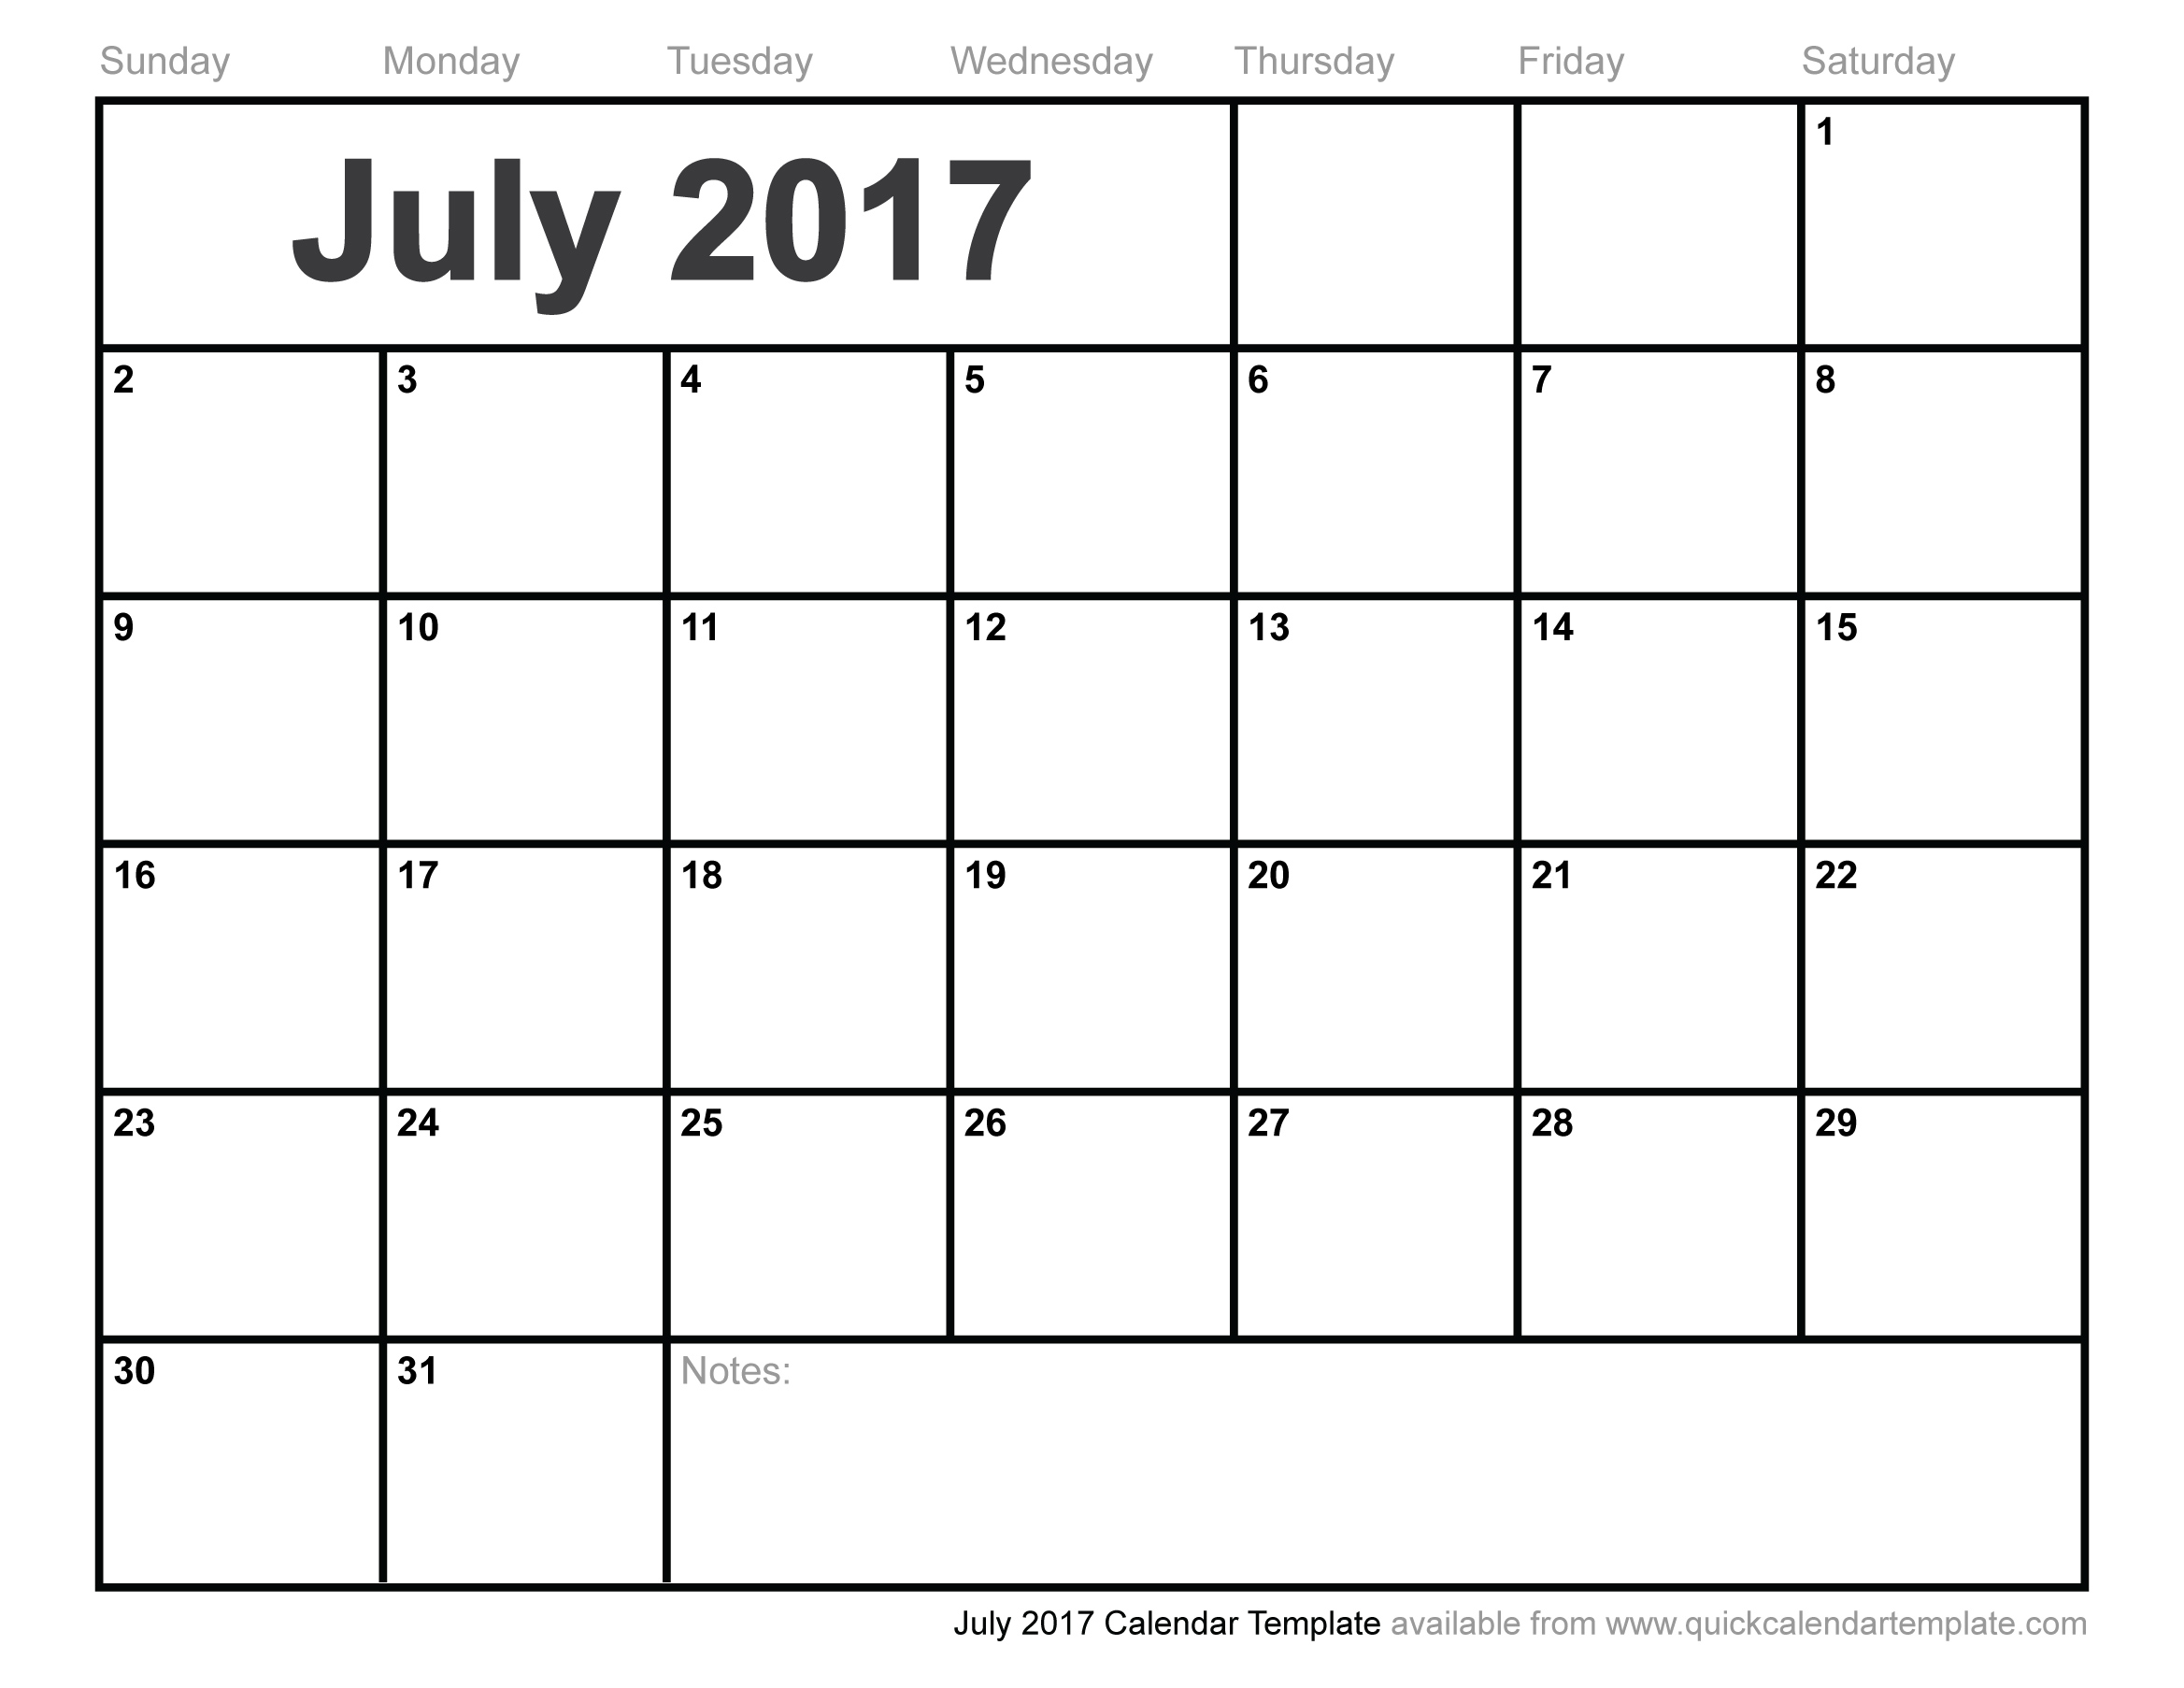 July 2017 Calendar Pdf | weekly calendar template